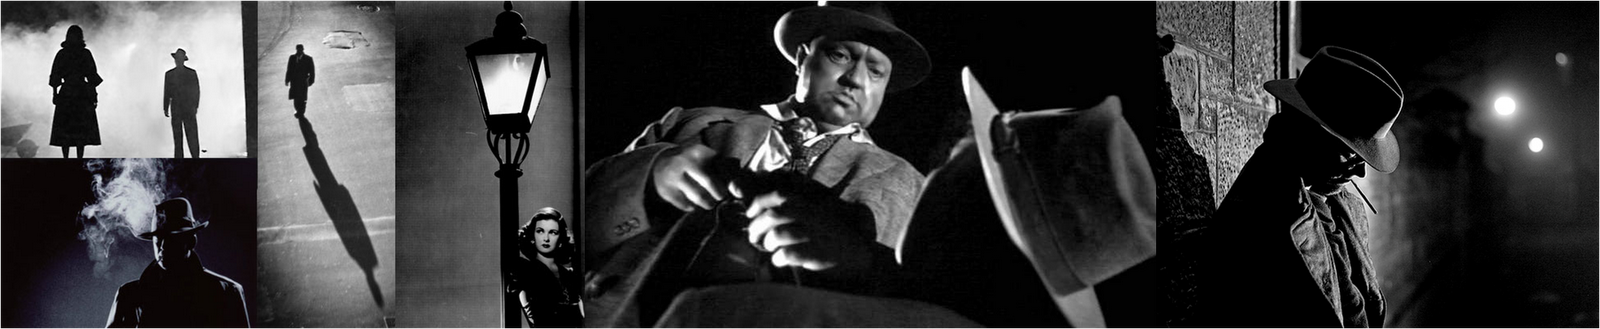 film noir a style spanning genres essay It was a style of black and white american films that first evolved in the 1940s, became prominent in the post-war era, and lasted in a classic golden age period until about 1960 (marked by the 'last' film of the classic film noir era, orson welles' touch of evil (1958).